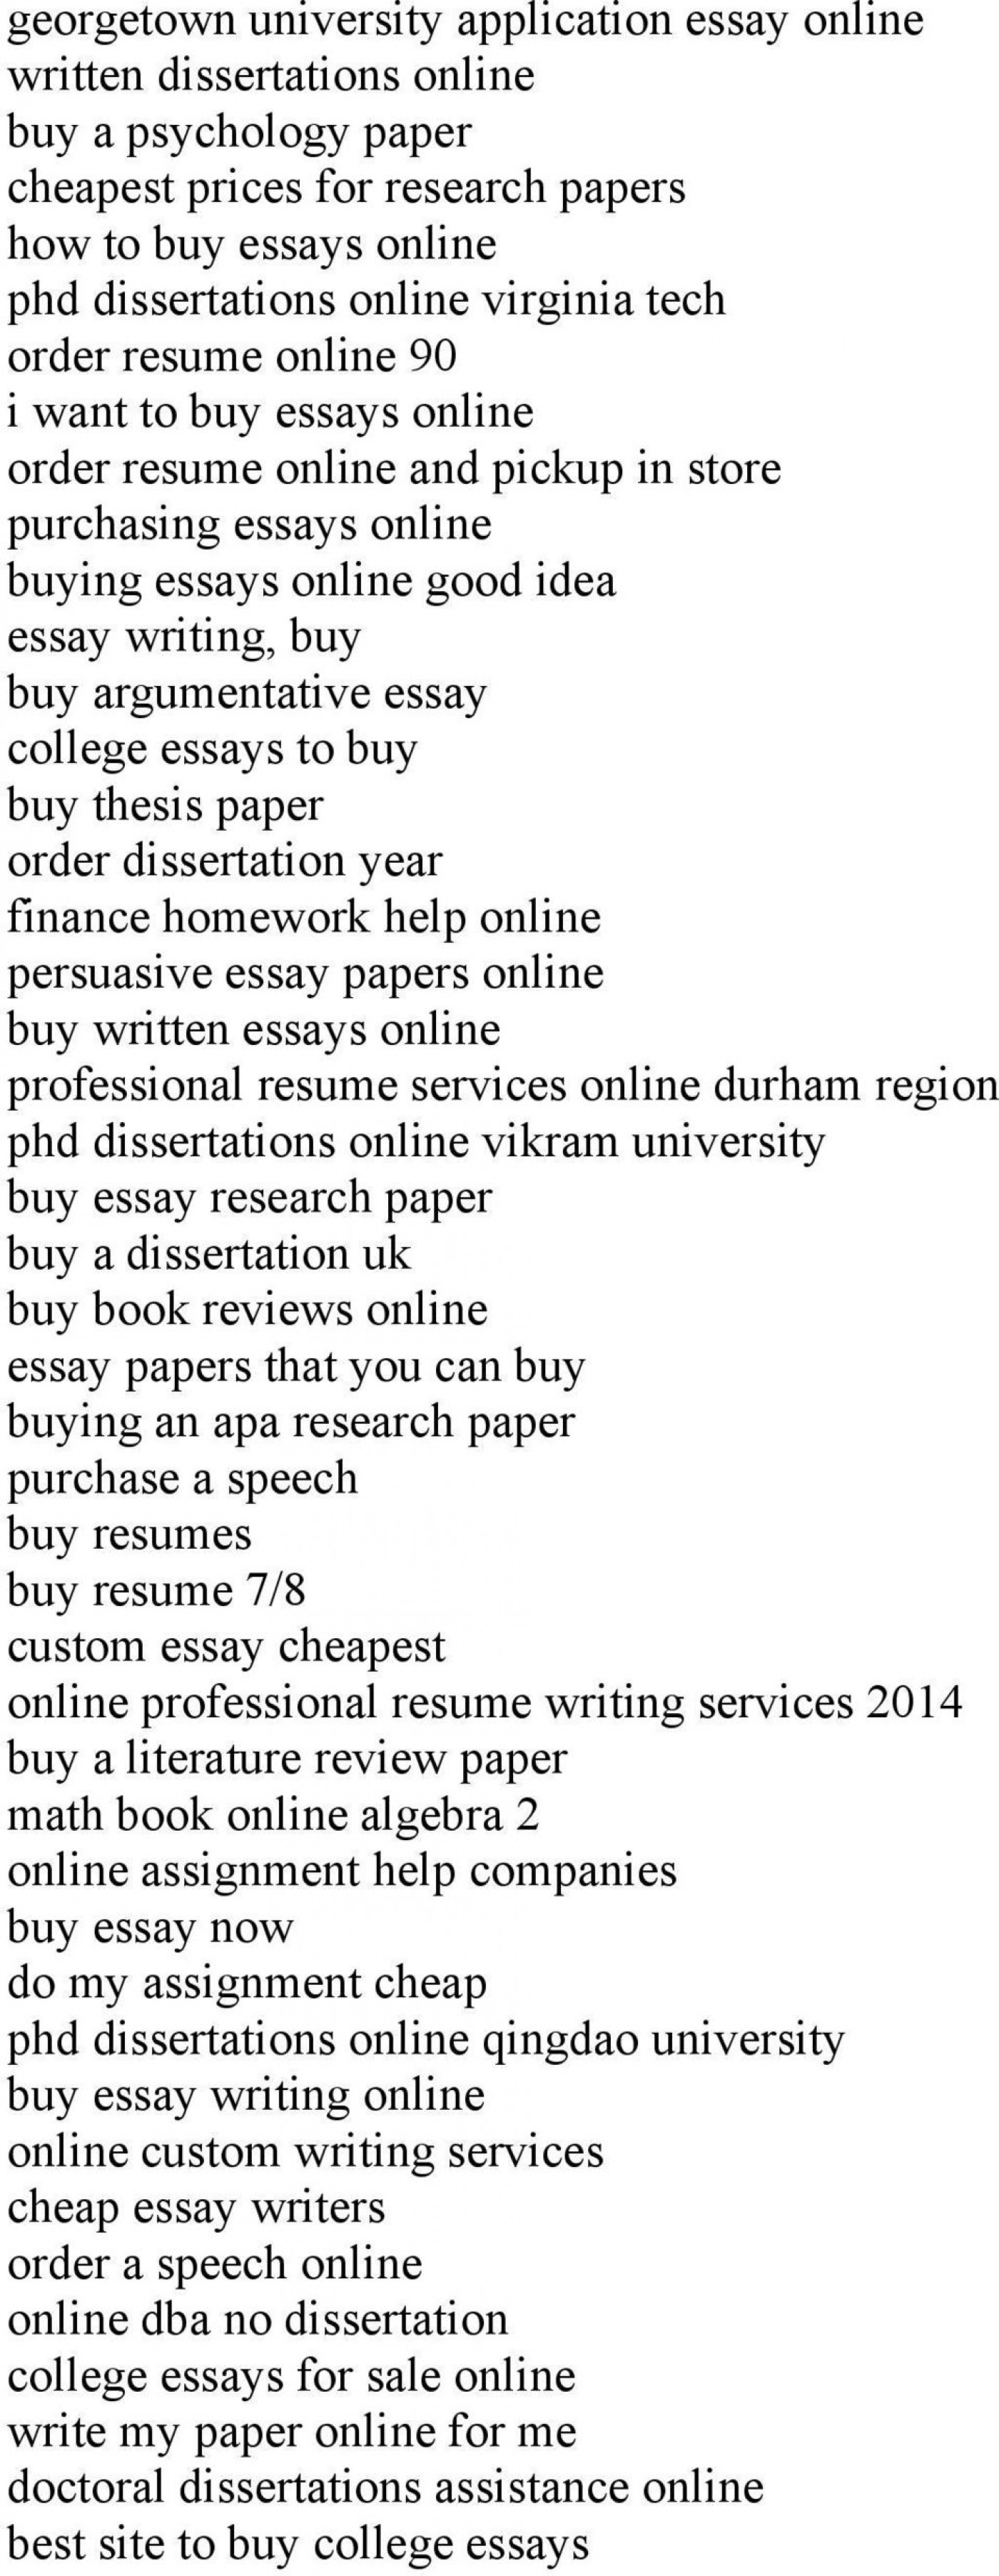 004 Research Paper Buying Page 4 Best A Consumer Behaviour Is Plagiarism 1400